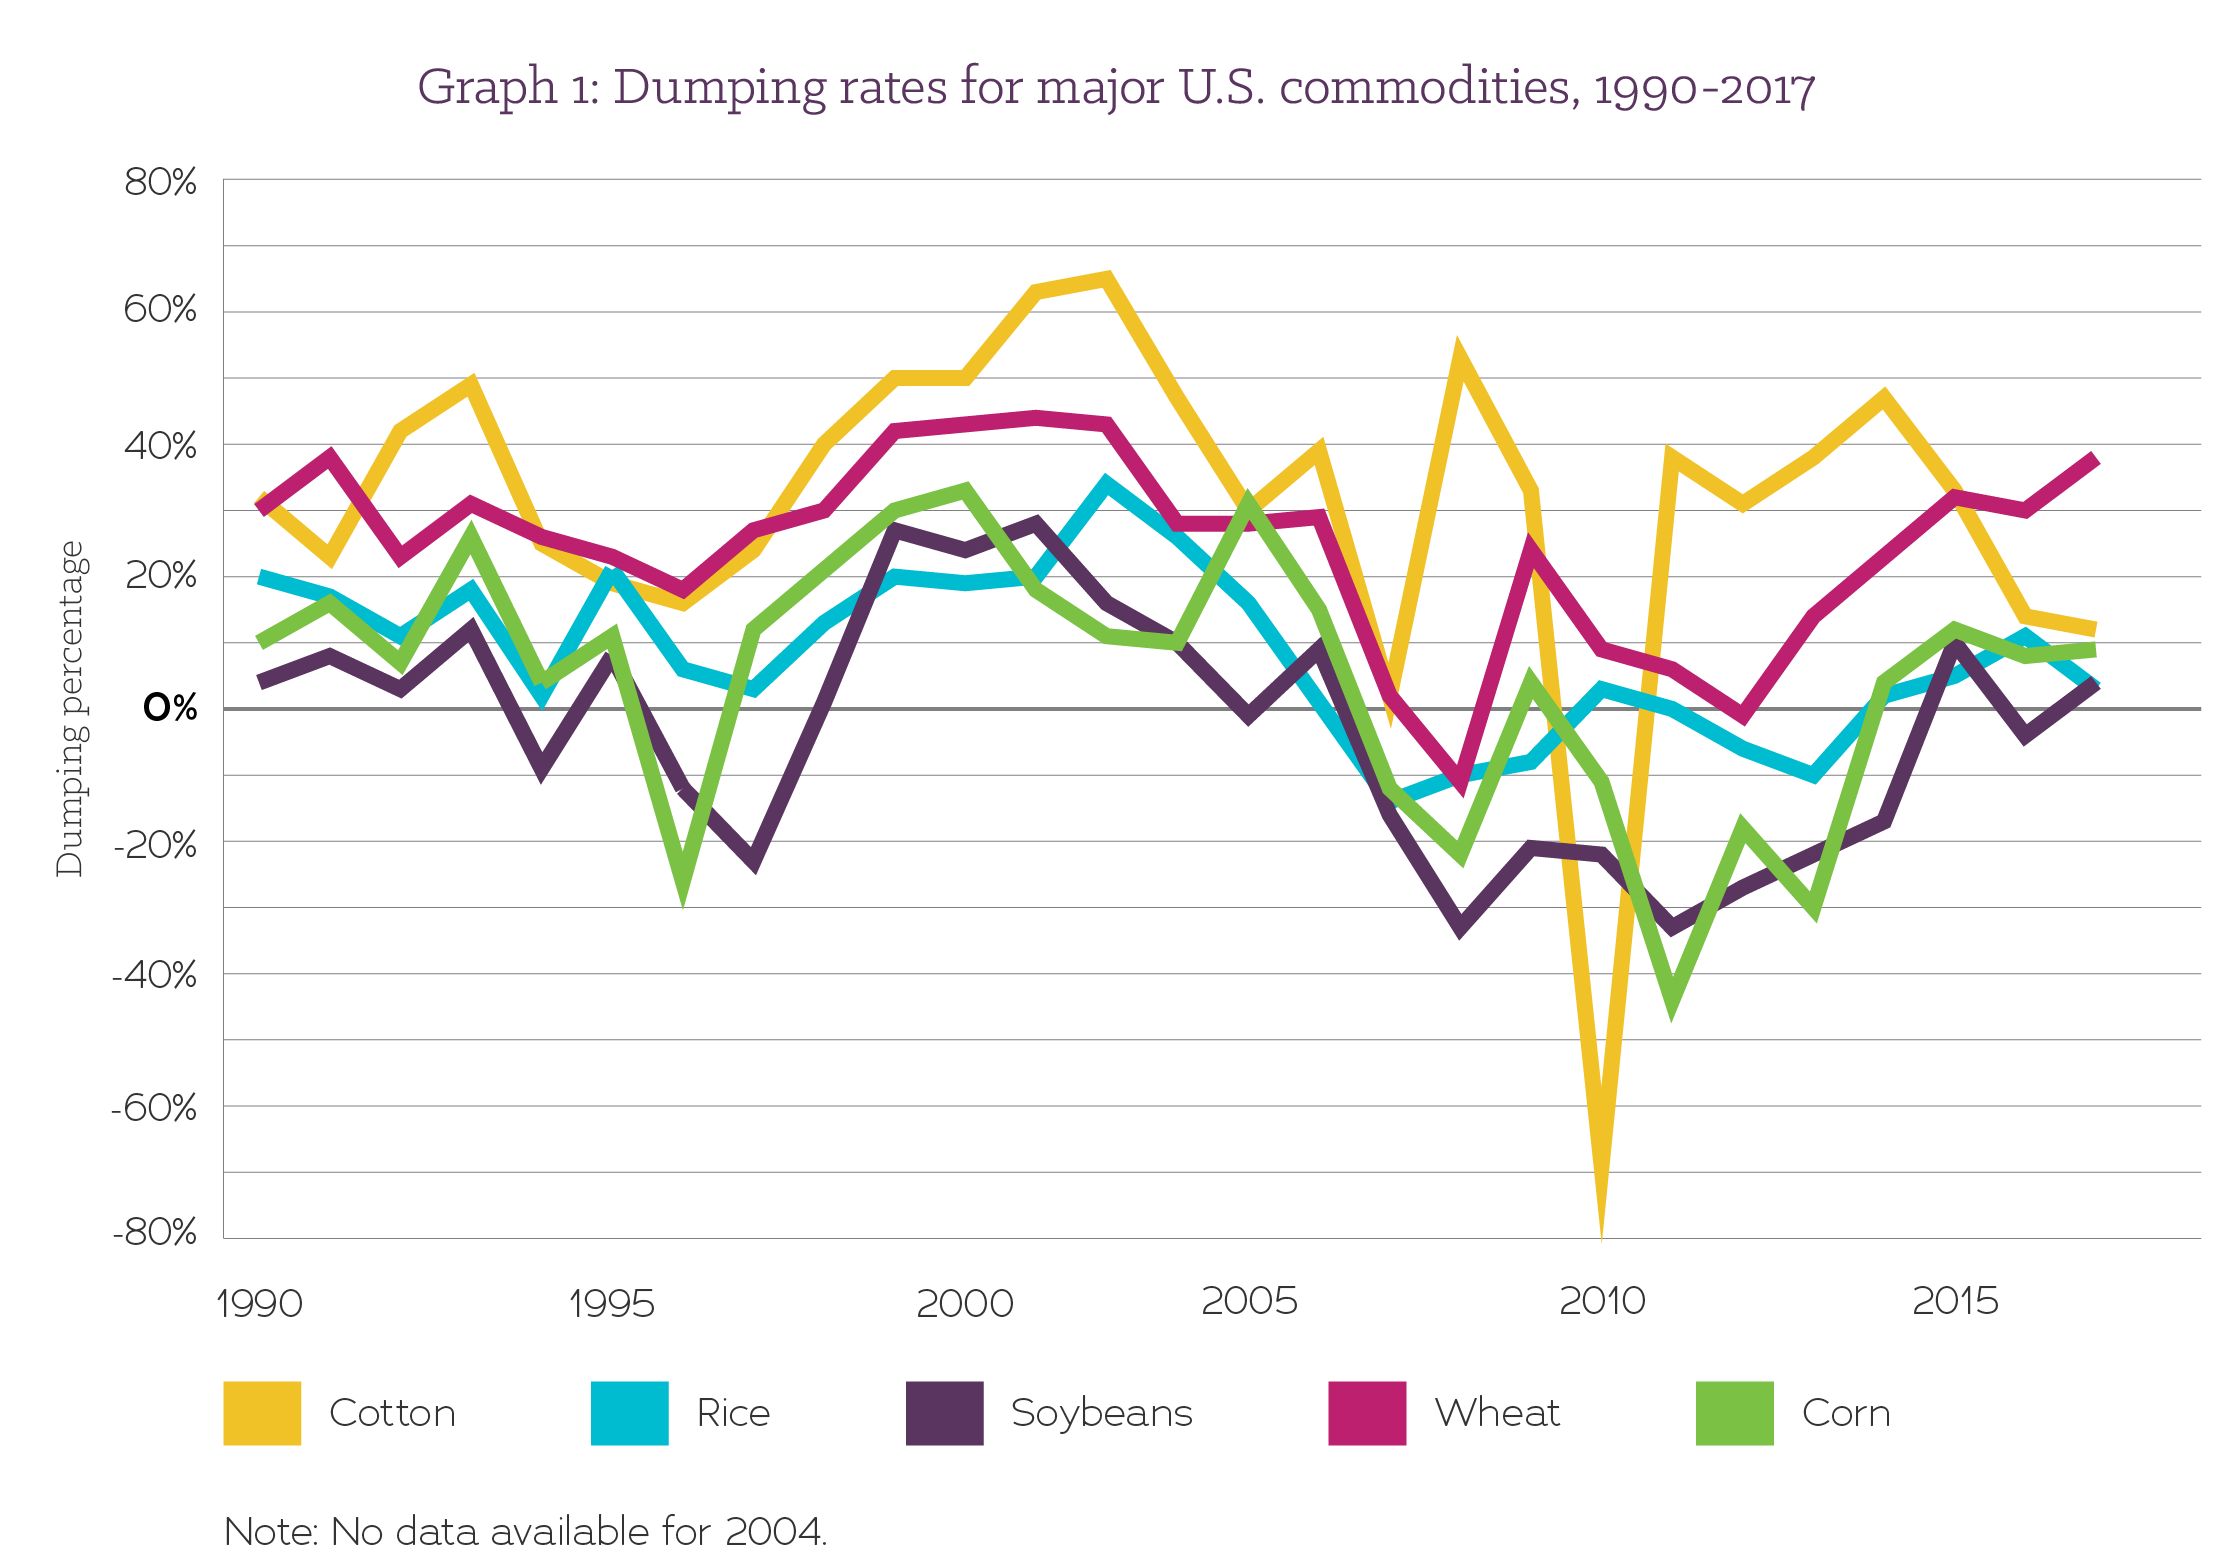 US commodity dumping rates